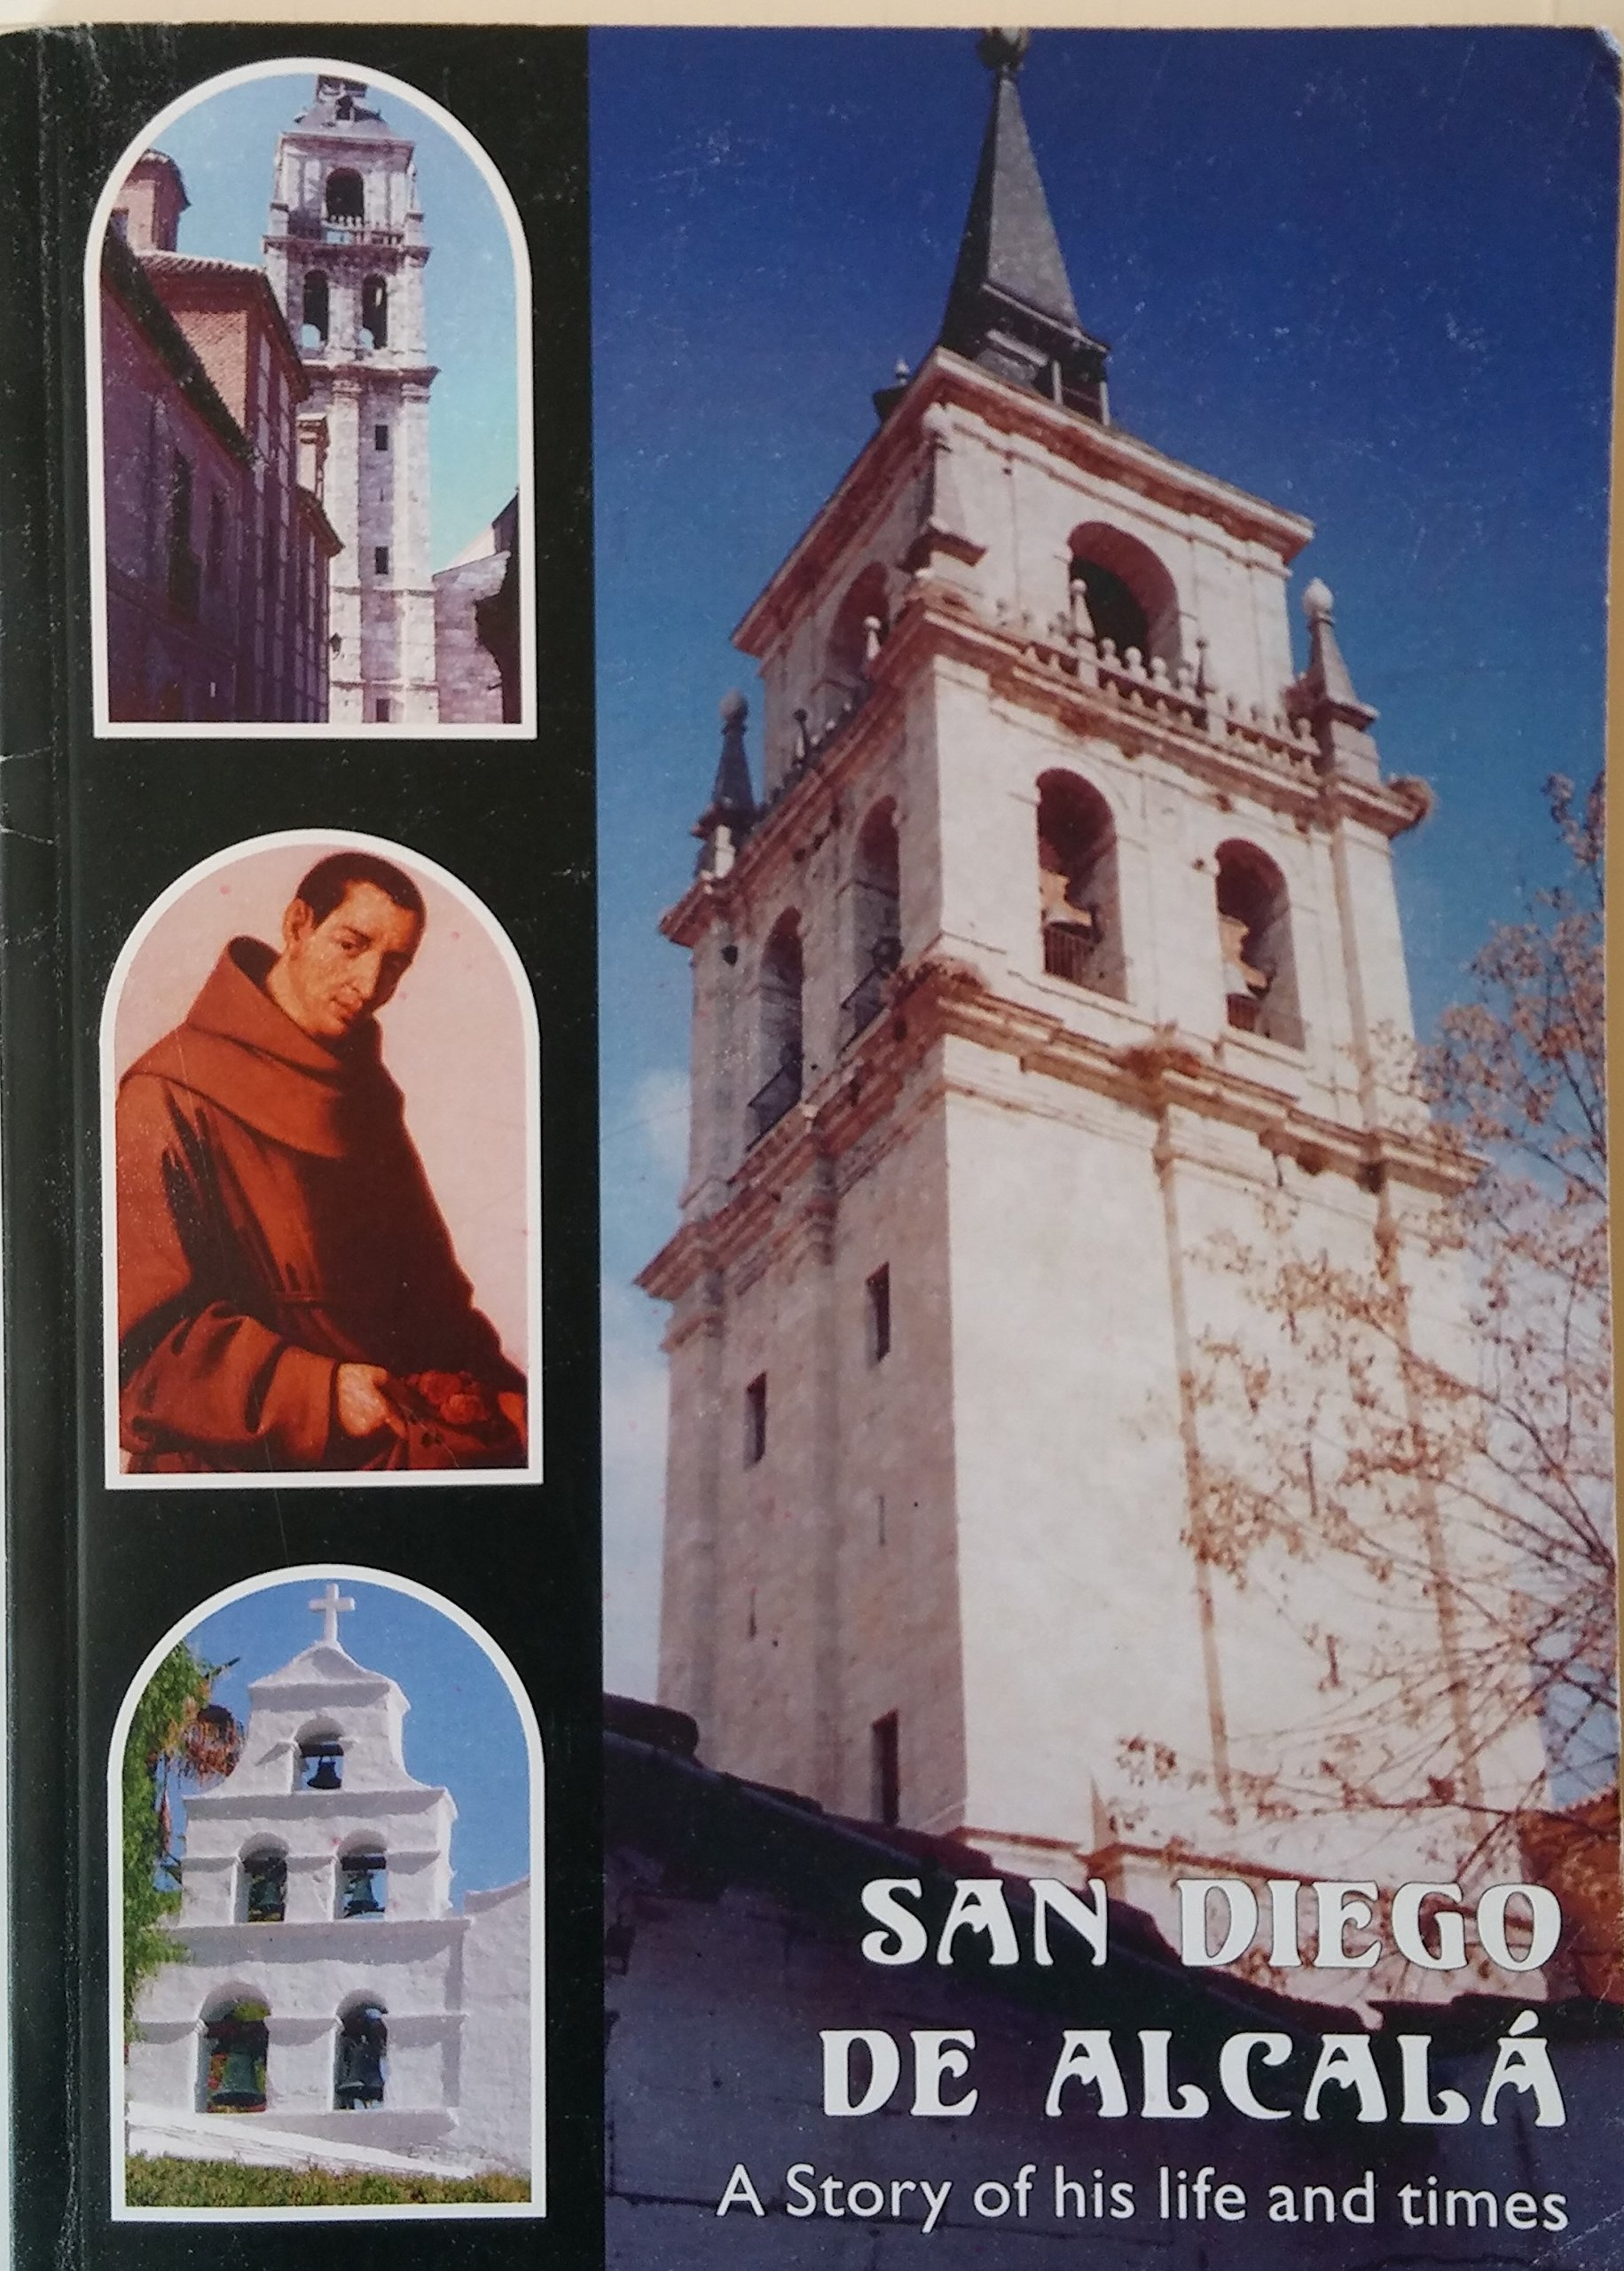 Download San Diego De Alcala (Saint Didacus) a Story of His Life and Times ebook